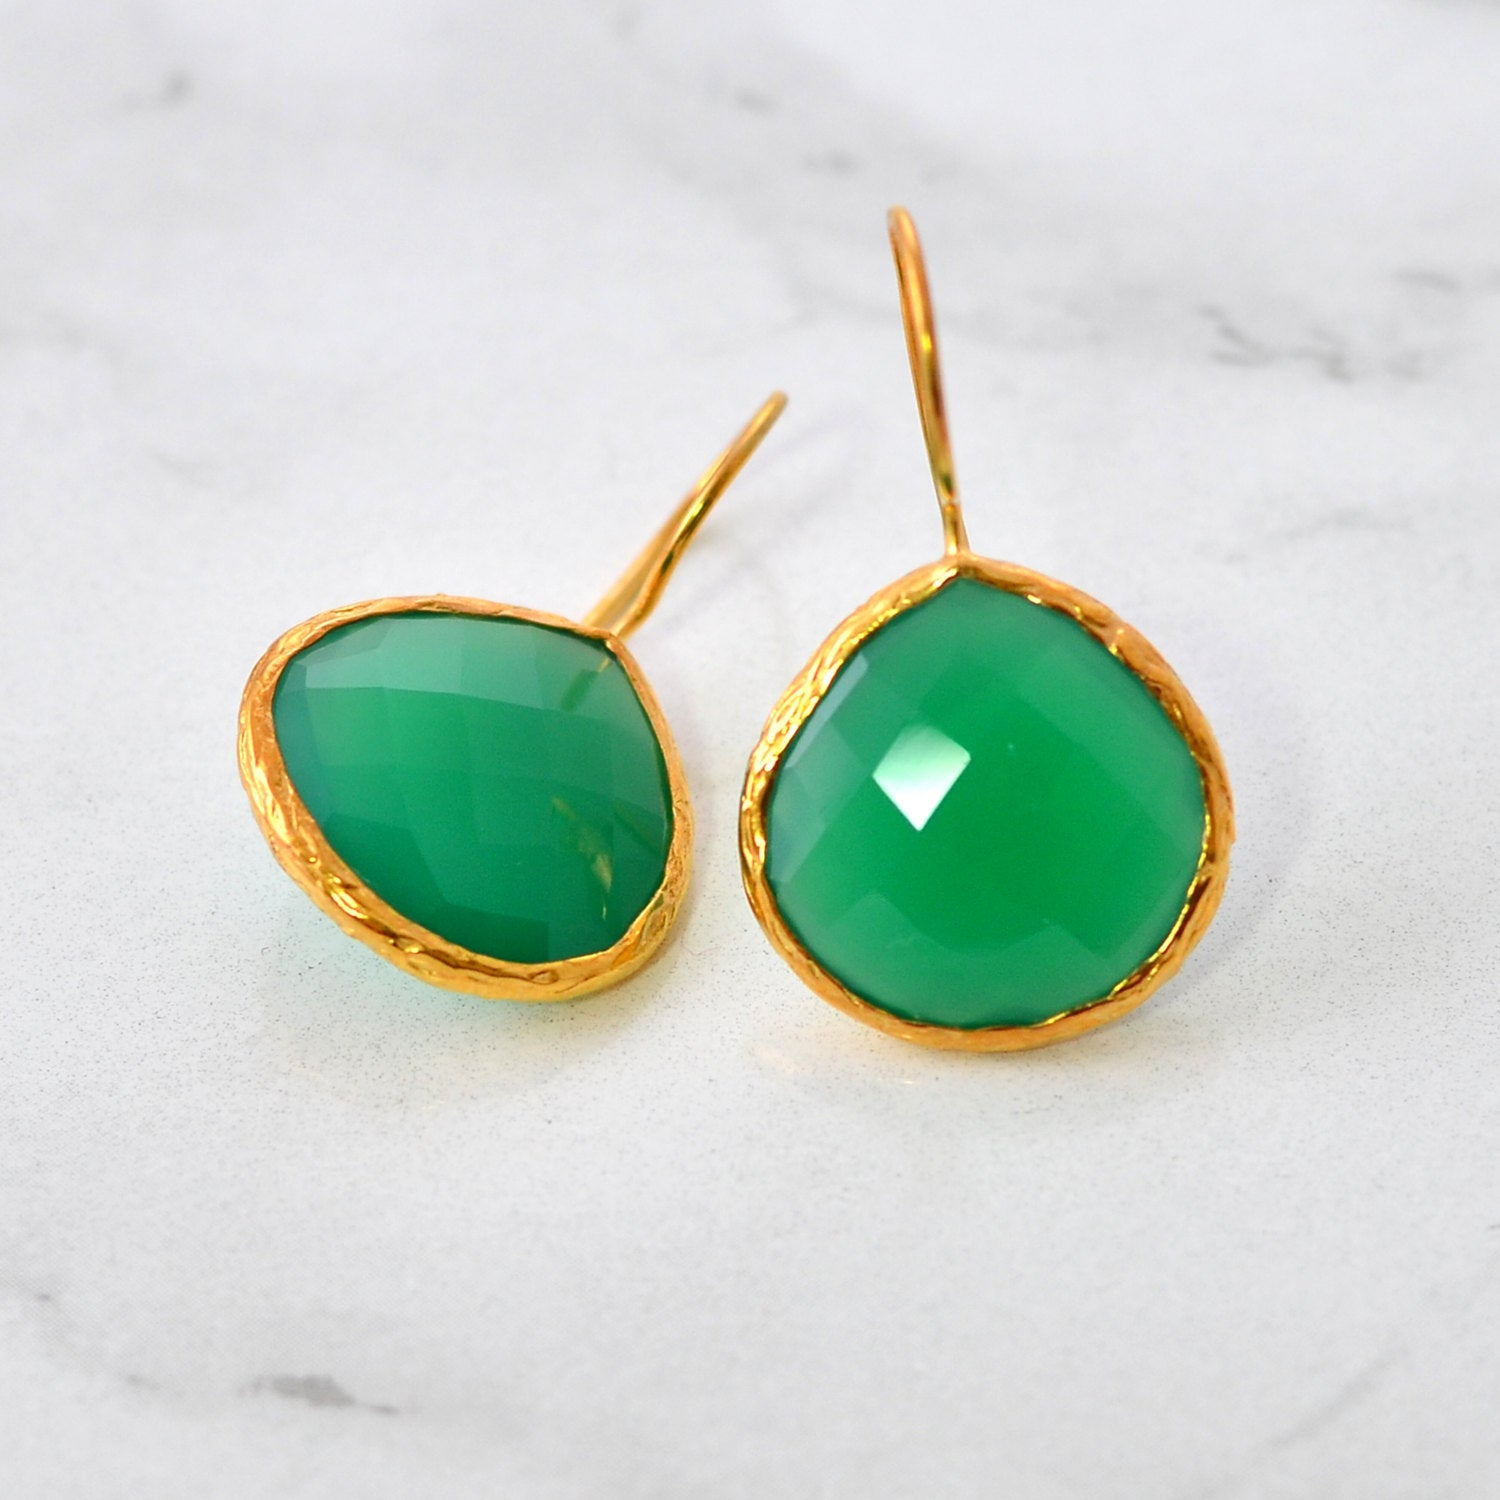 Emerald Green Earring - May Birthstone Earring - Green Onyx - Gold Hammered Framed Earring - Elegant Earring - Everyday Gemstone Earring